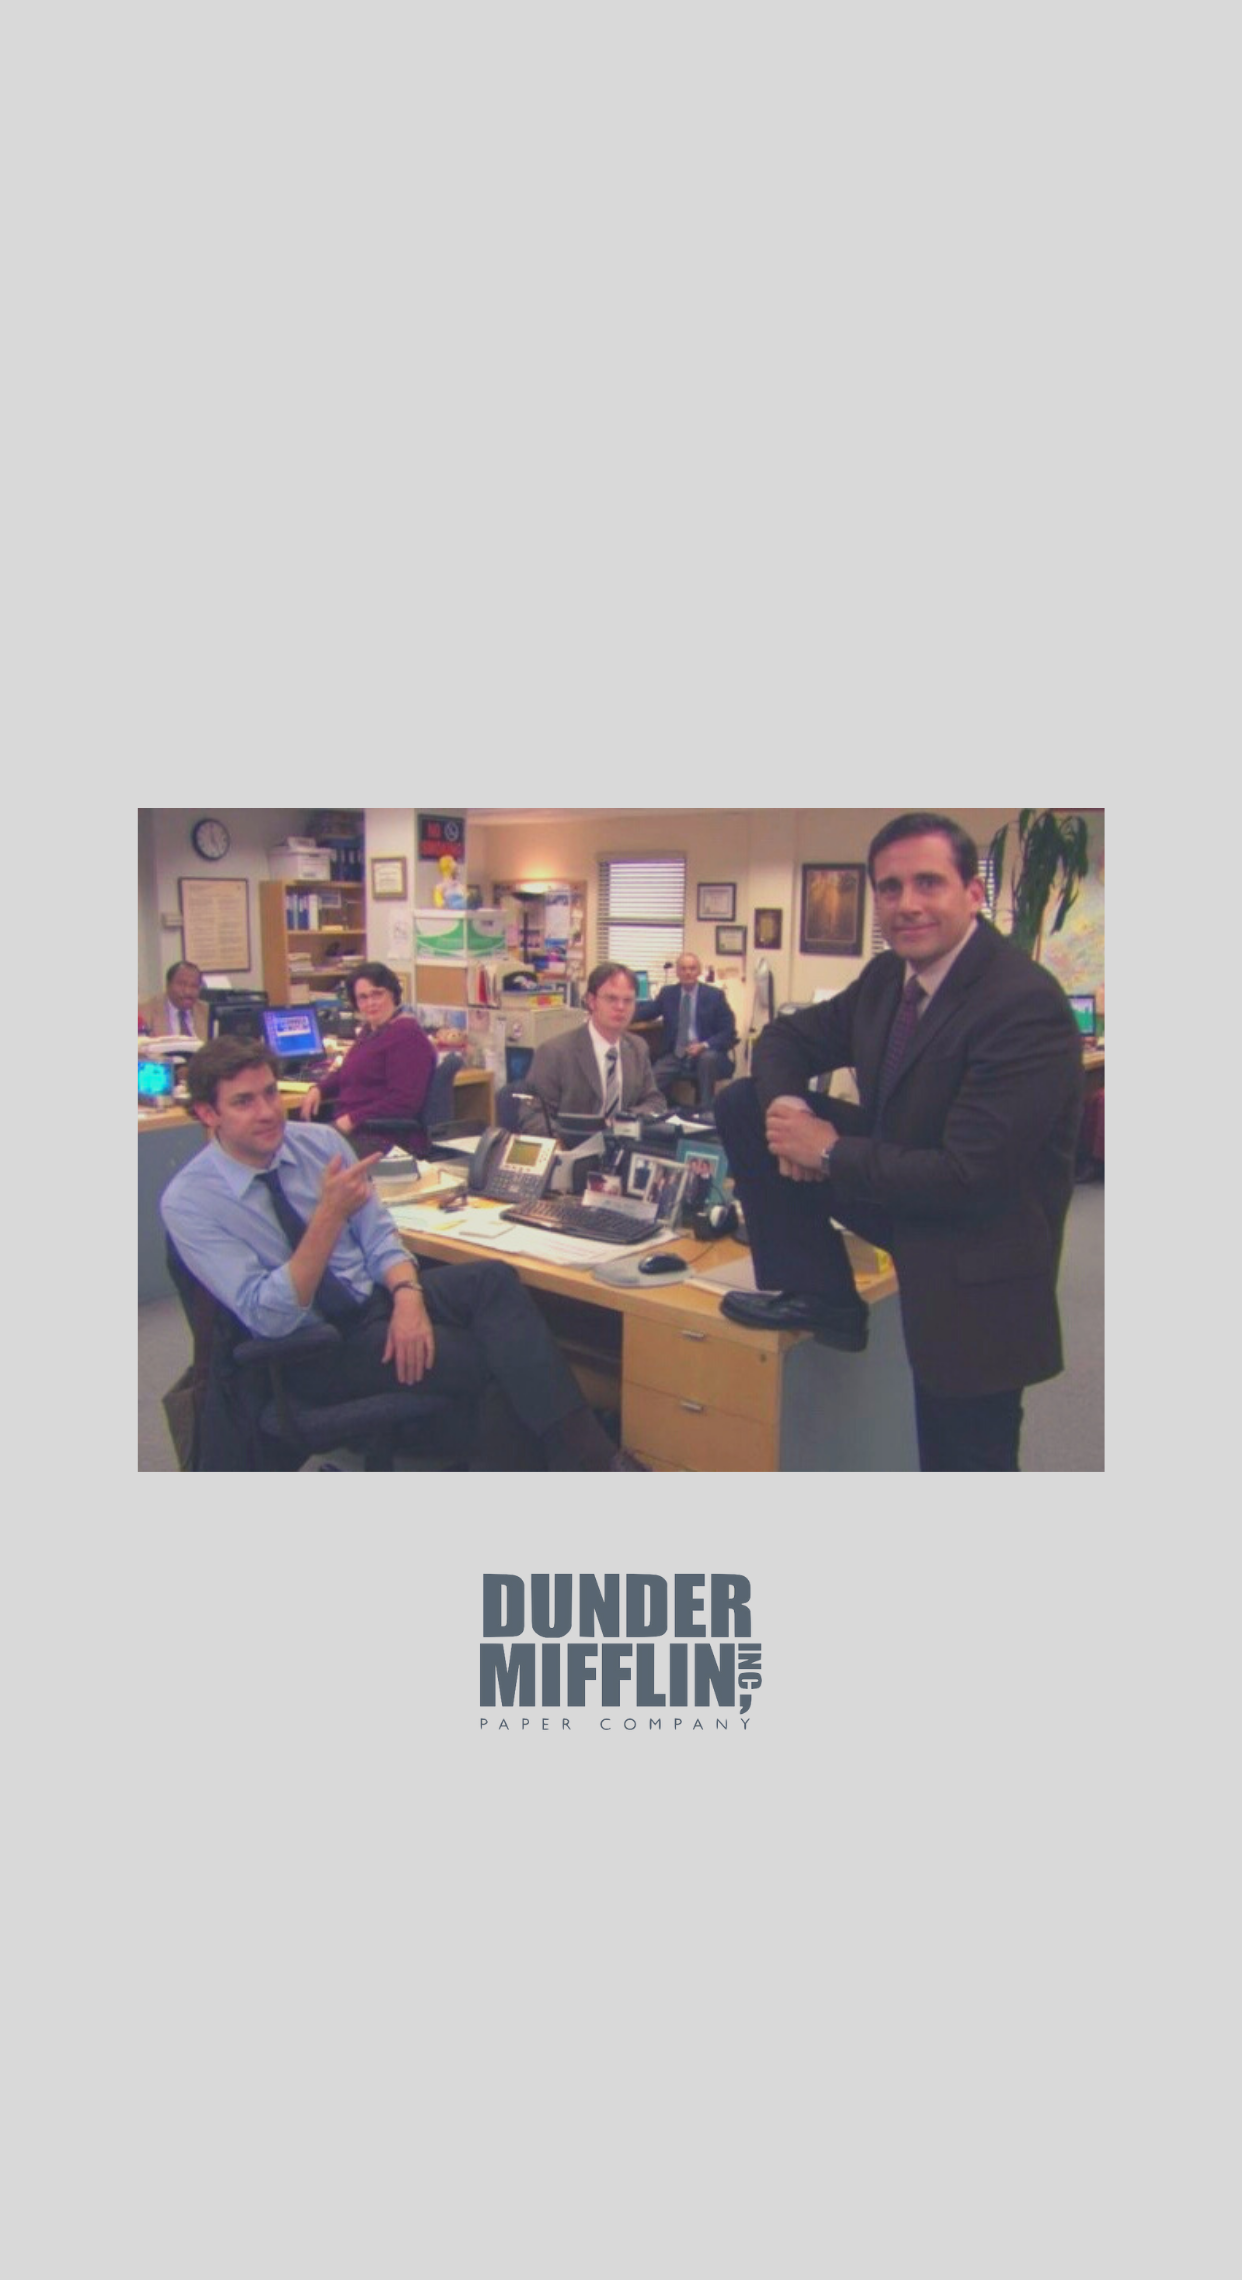 The Office In 2020 Office Wallpaper Office Pictures The Office Show